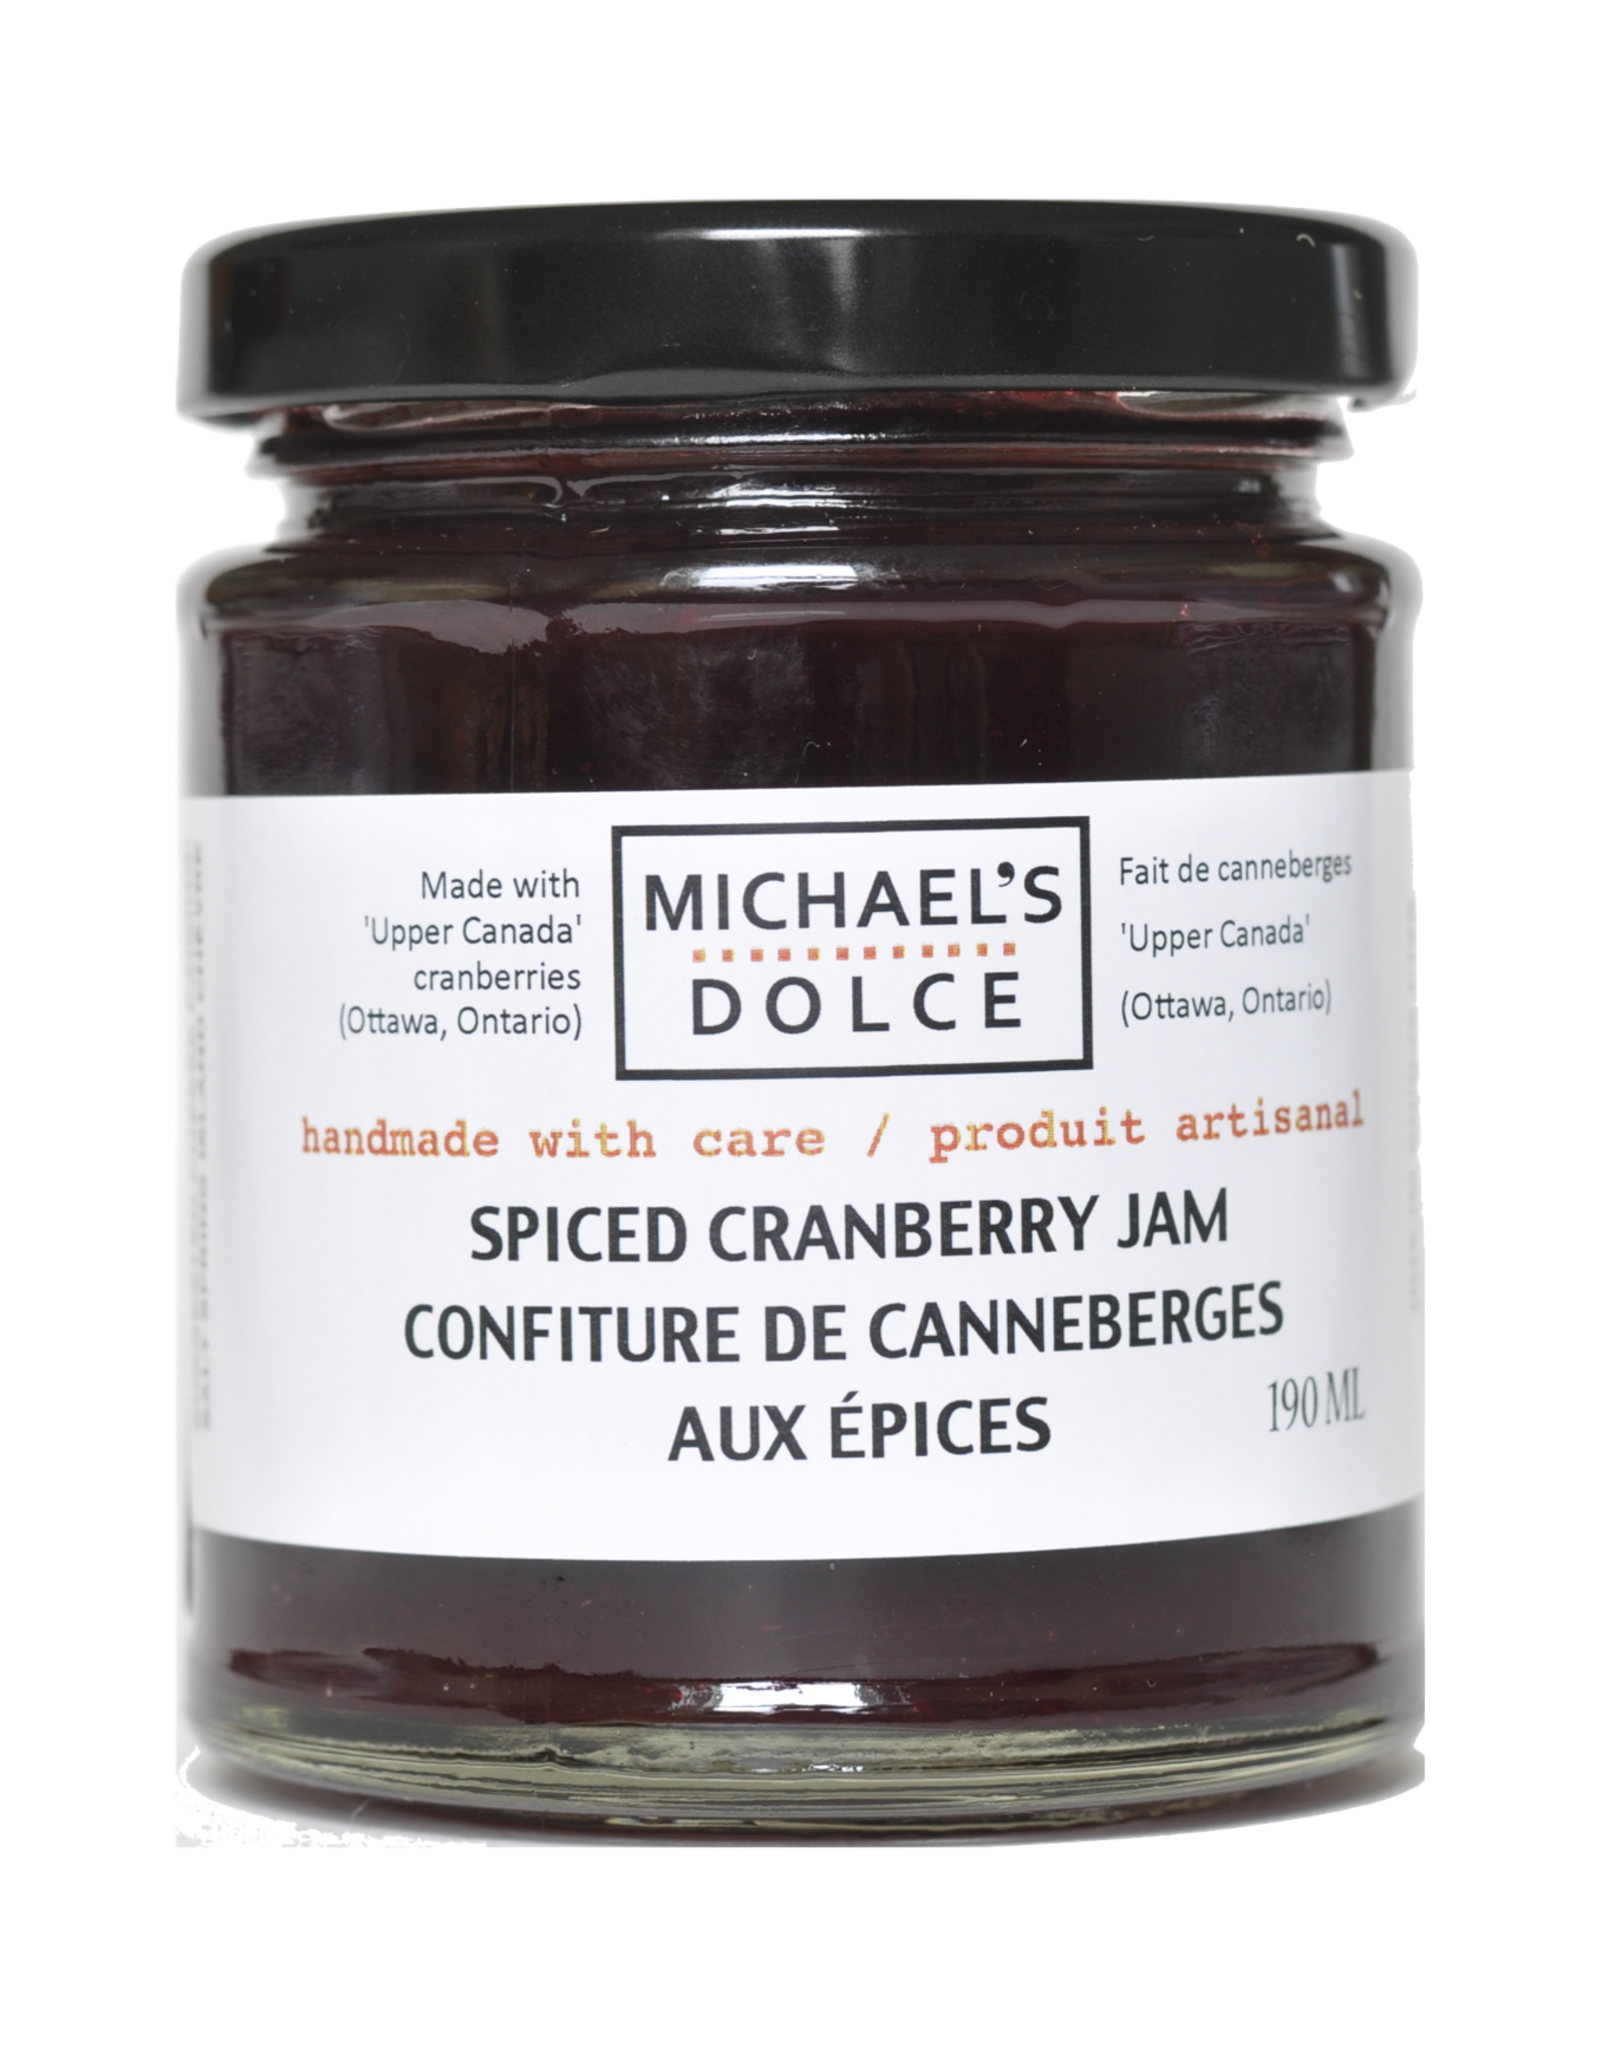 Spiced Cranberry Jam